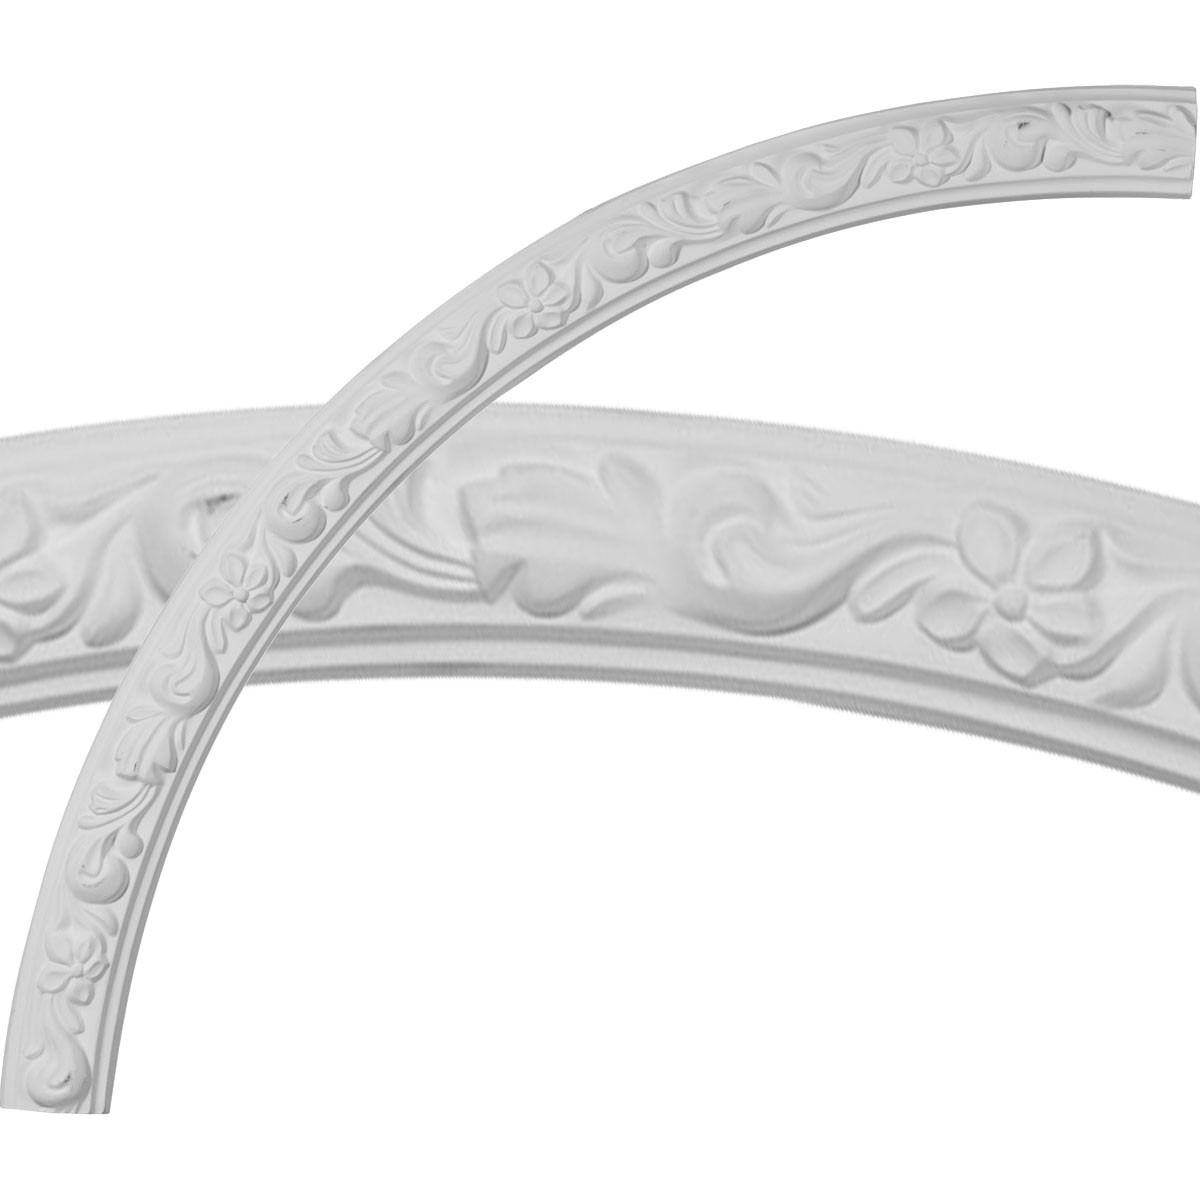 """EM-CR39SU - 40""""OD x 36""""ID x 2""""W x 7/8""""P Sussex Floral Ceiling Ring (1/4 of complete circle)"""